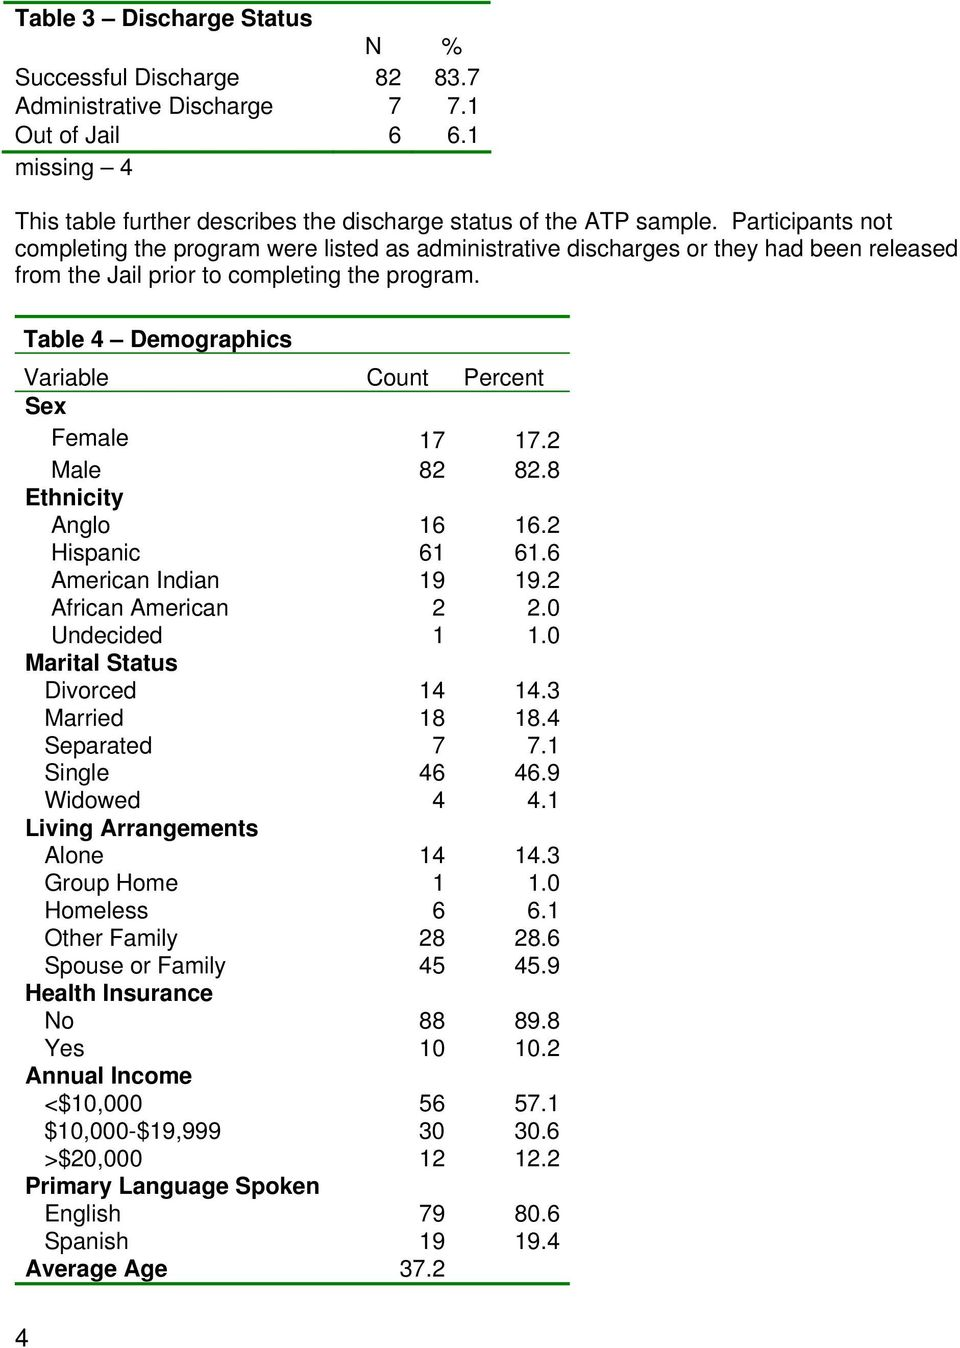 Table 4 Demographics Variable Count Percent Sex Female 17 17.2 Male 82 82.8 Ethnicity Anglo 16 16.2 Hispanic 61 61.6 American Indian 19 19.2 African American 2 2.0 Undecided 1 1.